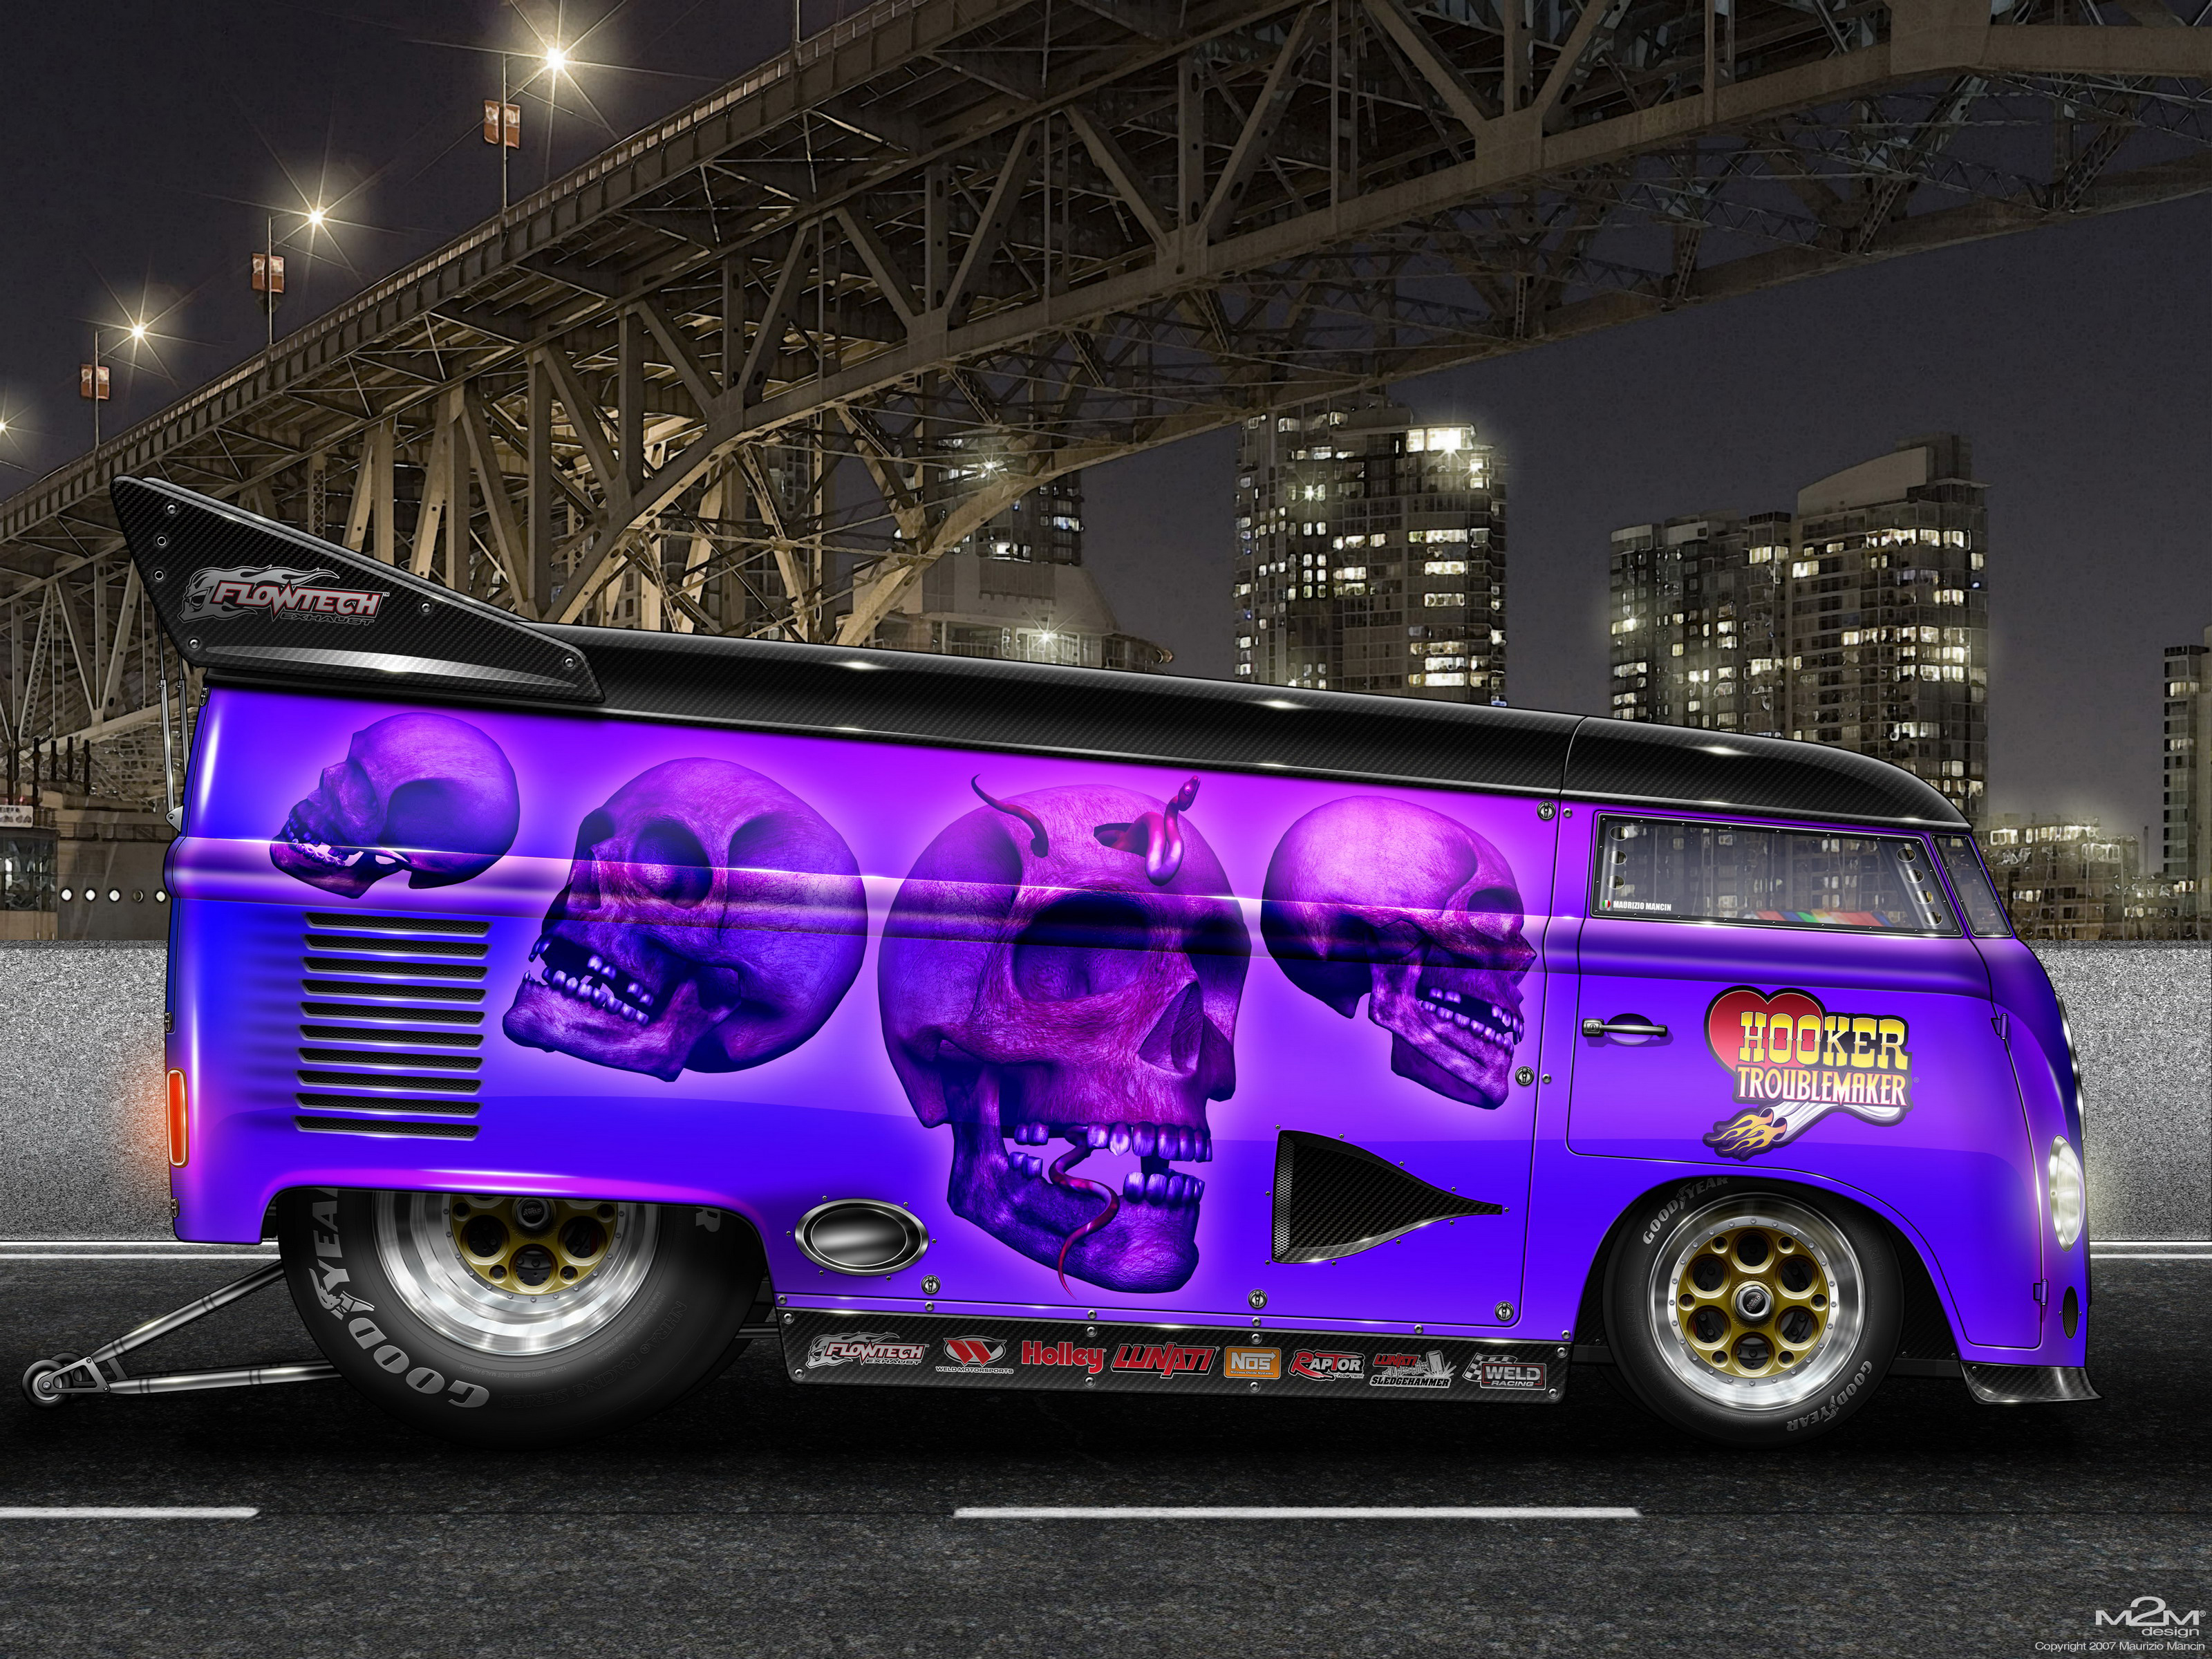 Lowrider Wallpaper Iphone Volkswagen Full Hd Wallpaper And Background Image